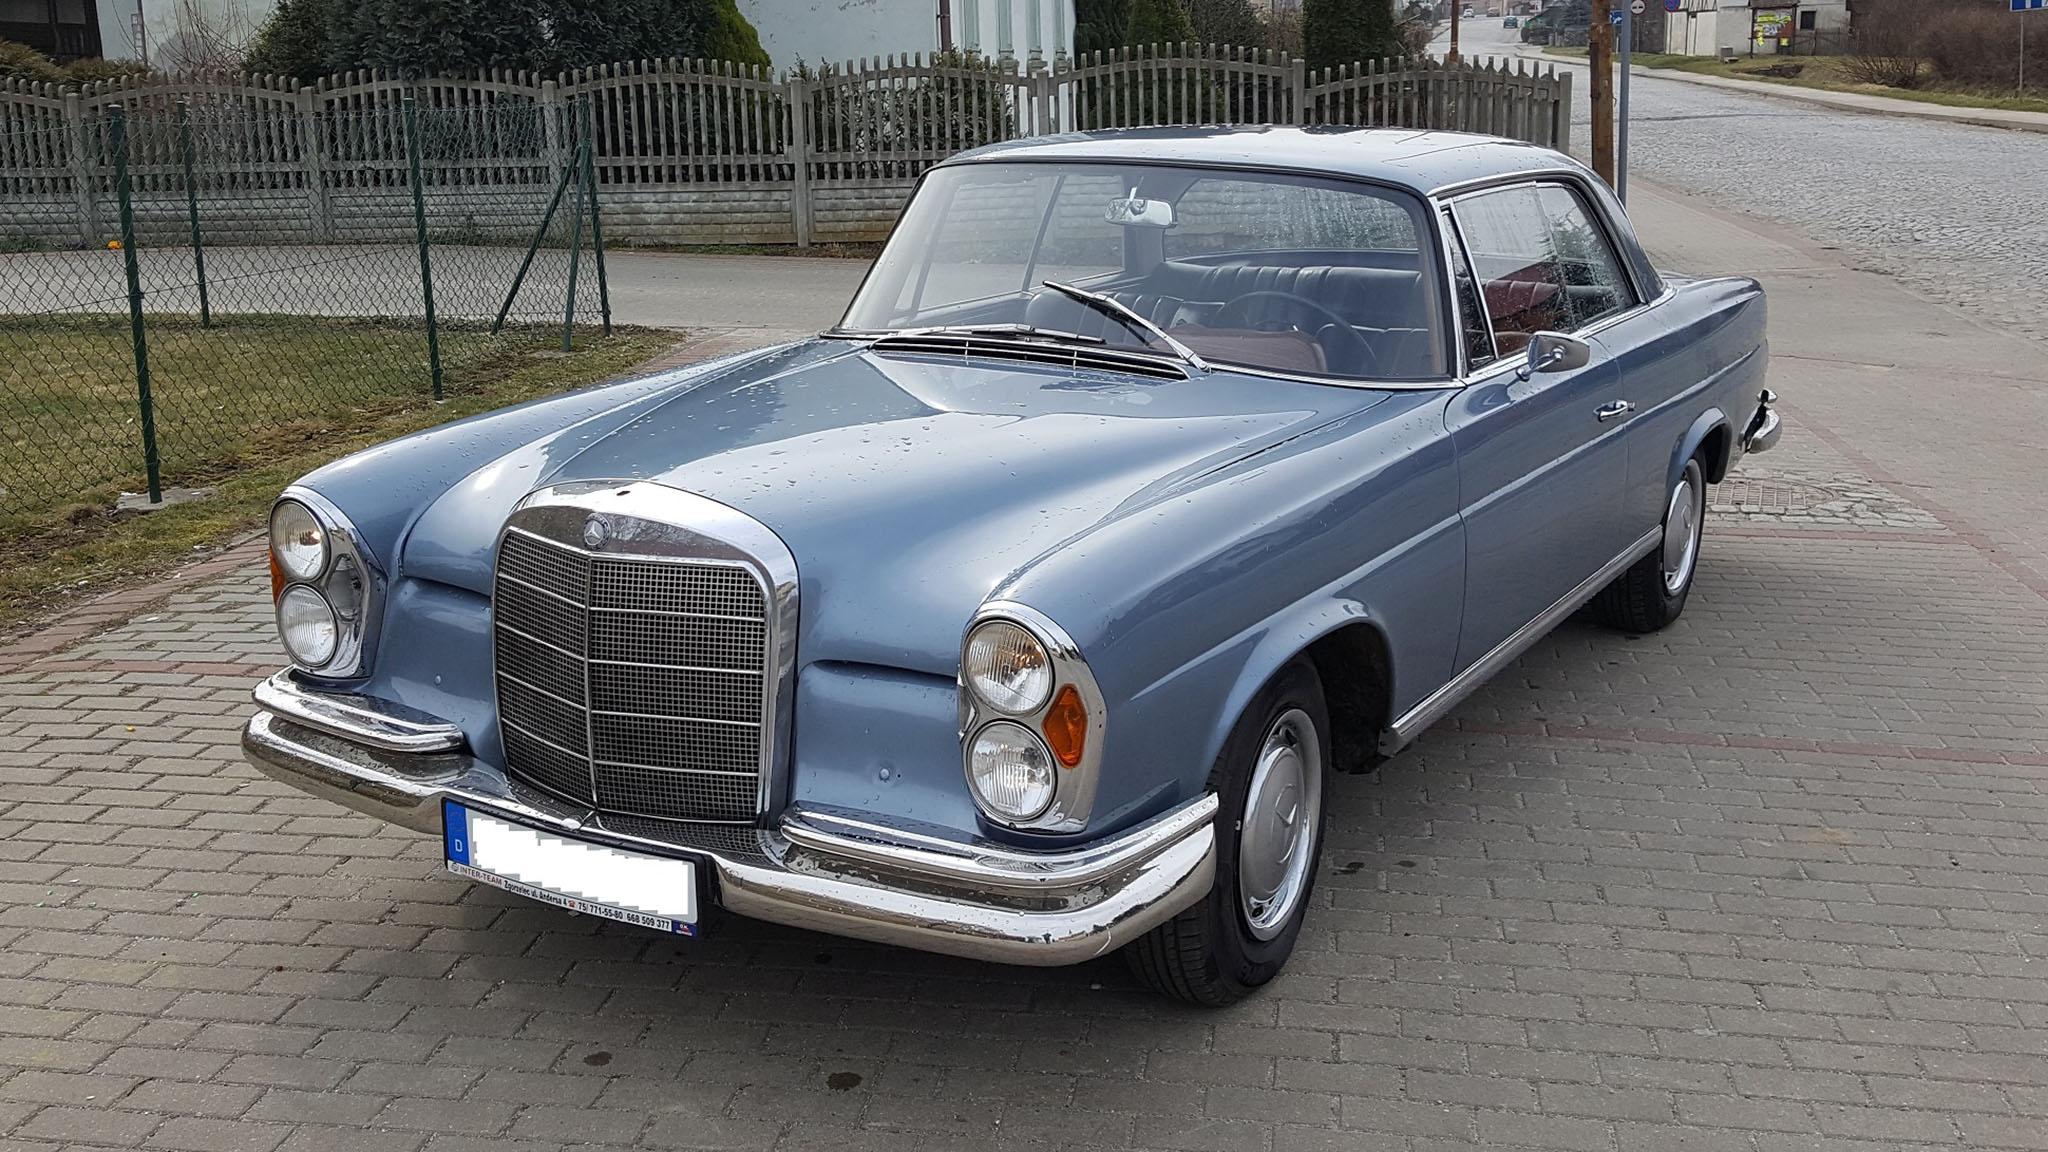 mercedes 250 se coupe w111 1967 125000 pln niemcy. Black Bedroom Furniture Sets. Home Design Ideas